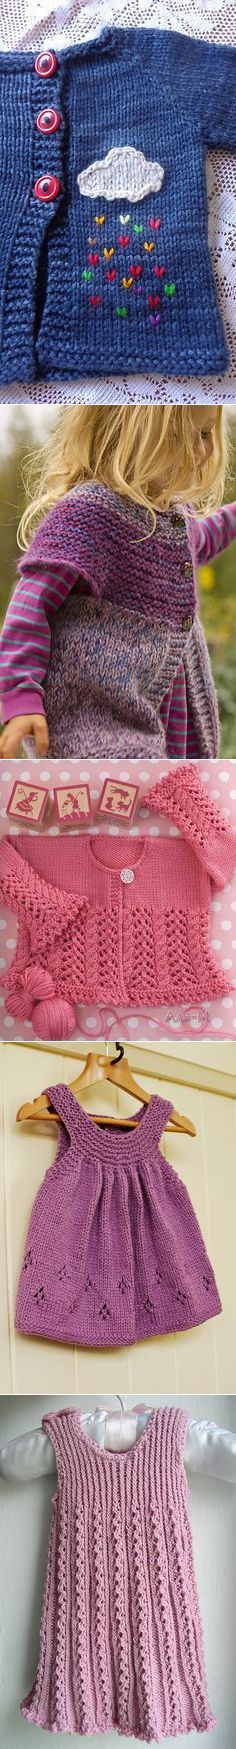 Knitting for Little Girls on Pinterest | 58 Pins | Деткам | Постила